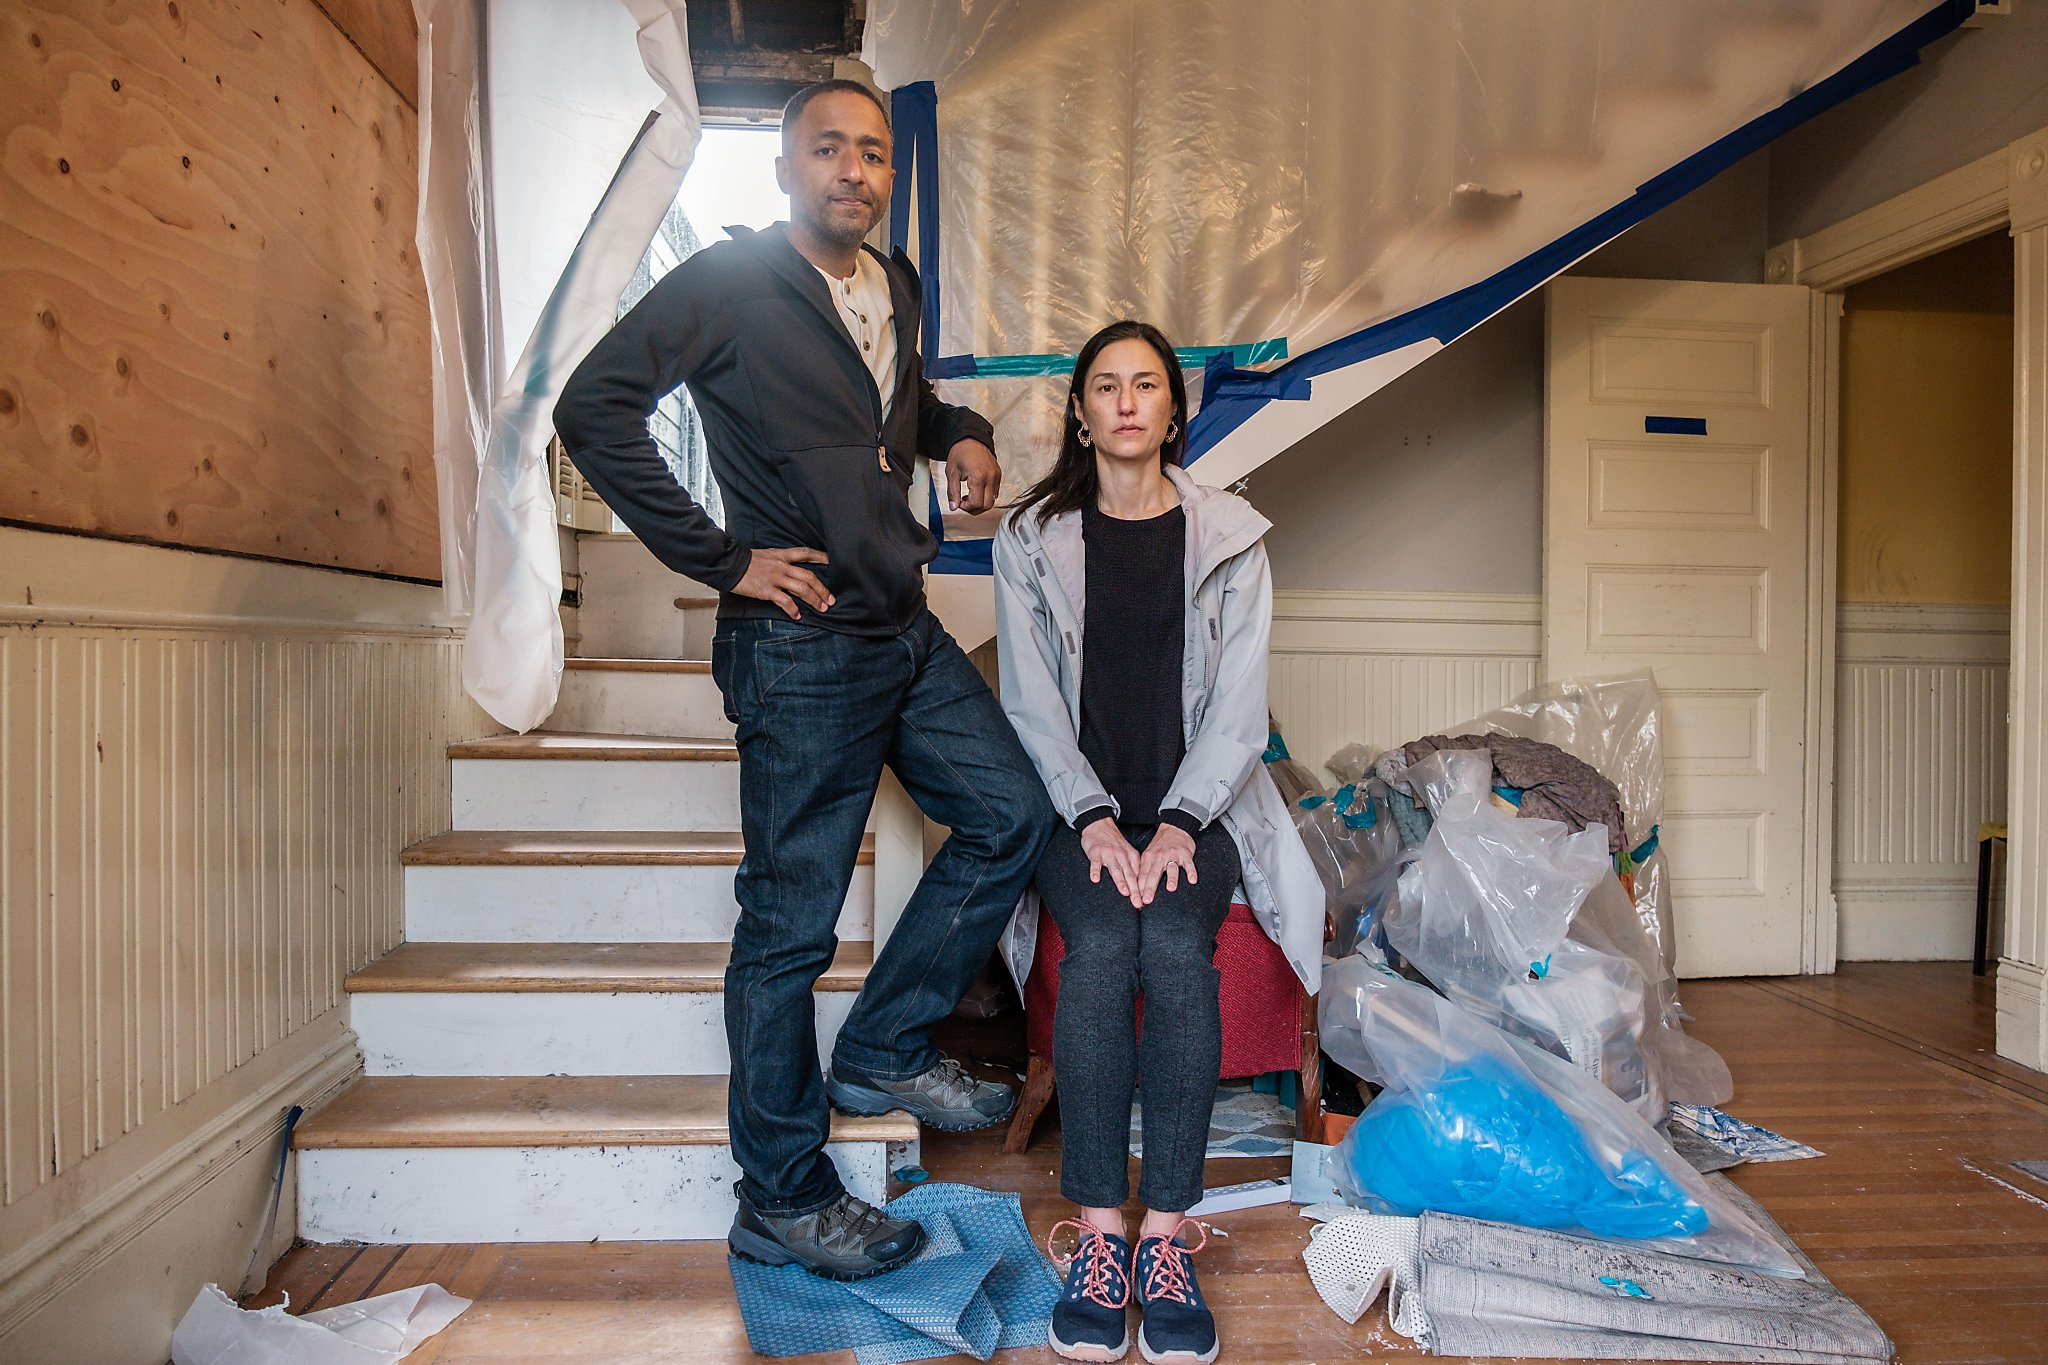 Neighbors asked repeatedly for S.F. to intervene. Now a man is accused of arson that destroyed 5 homes